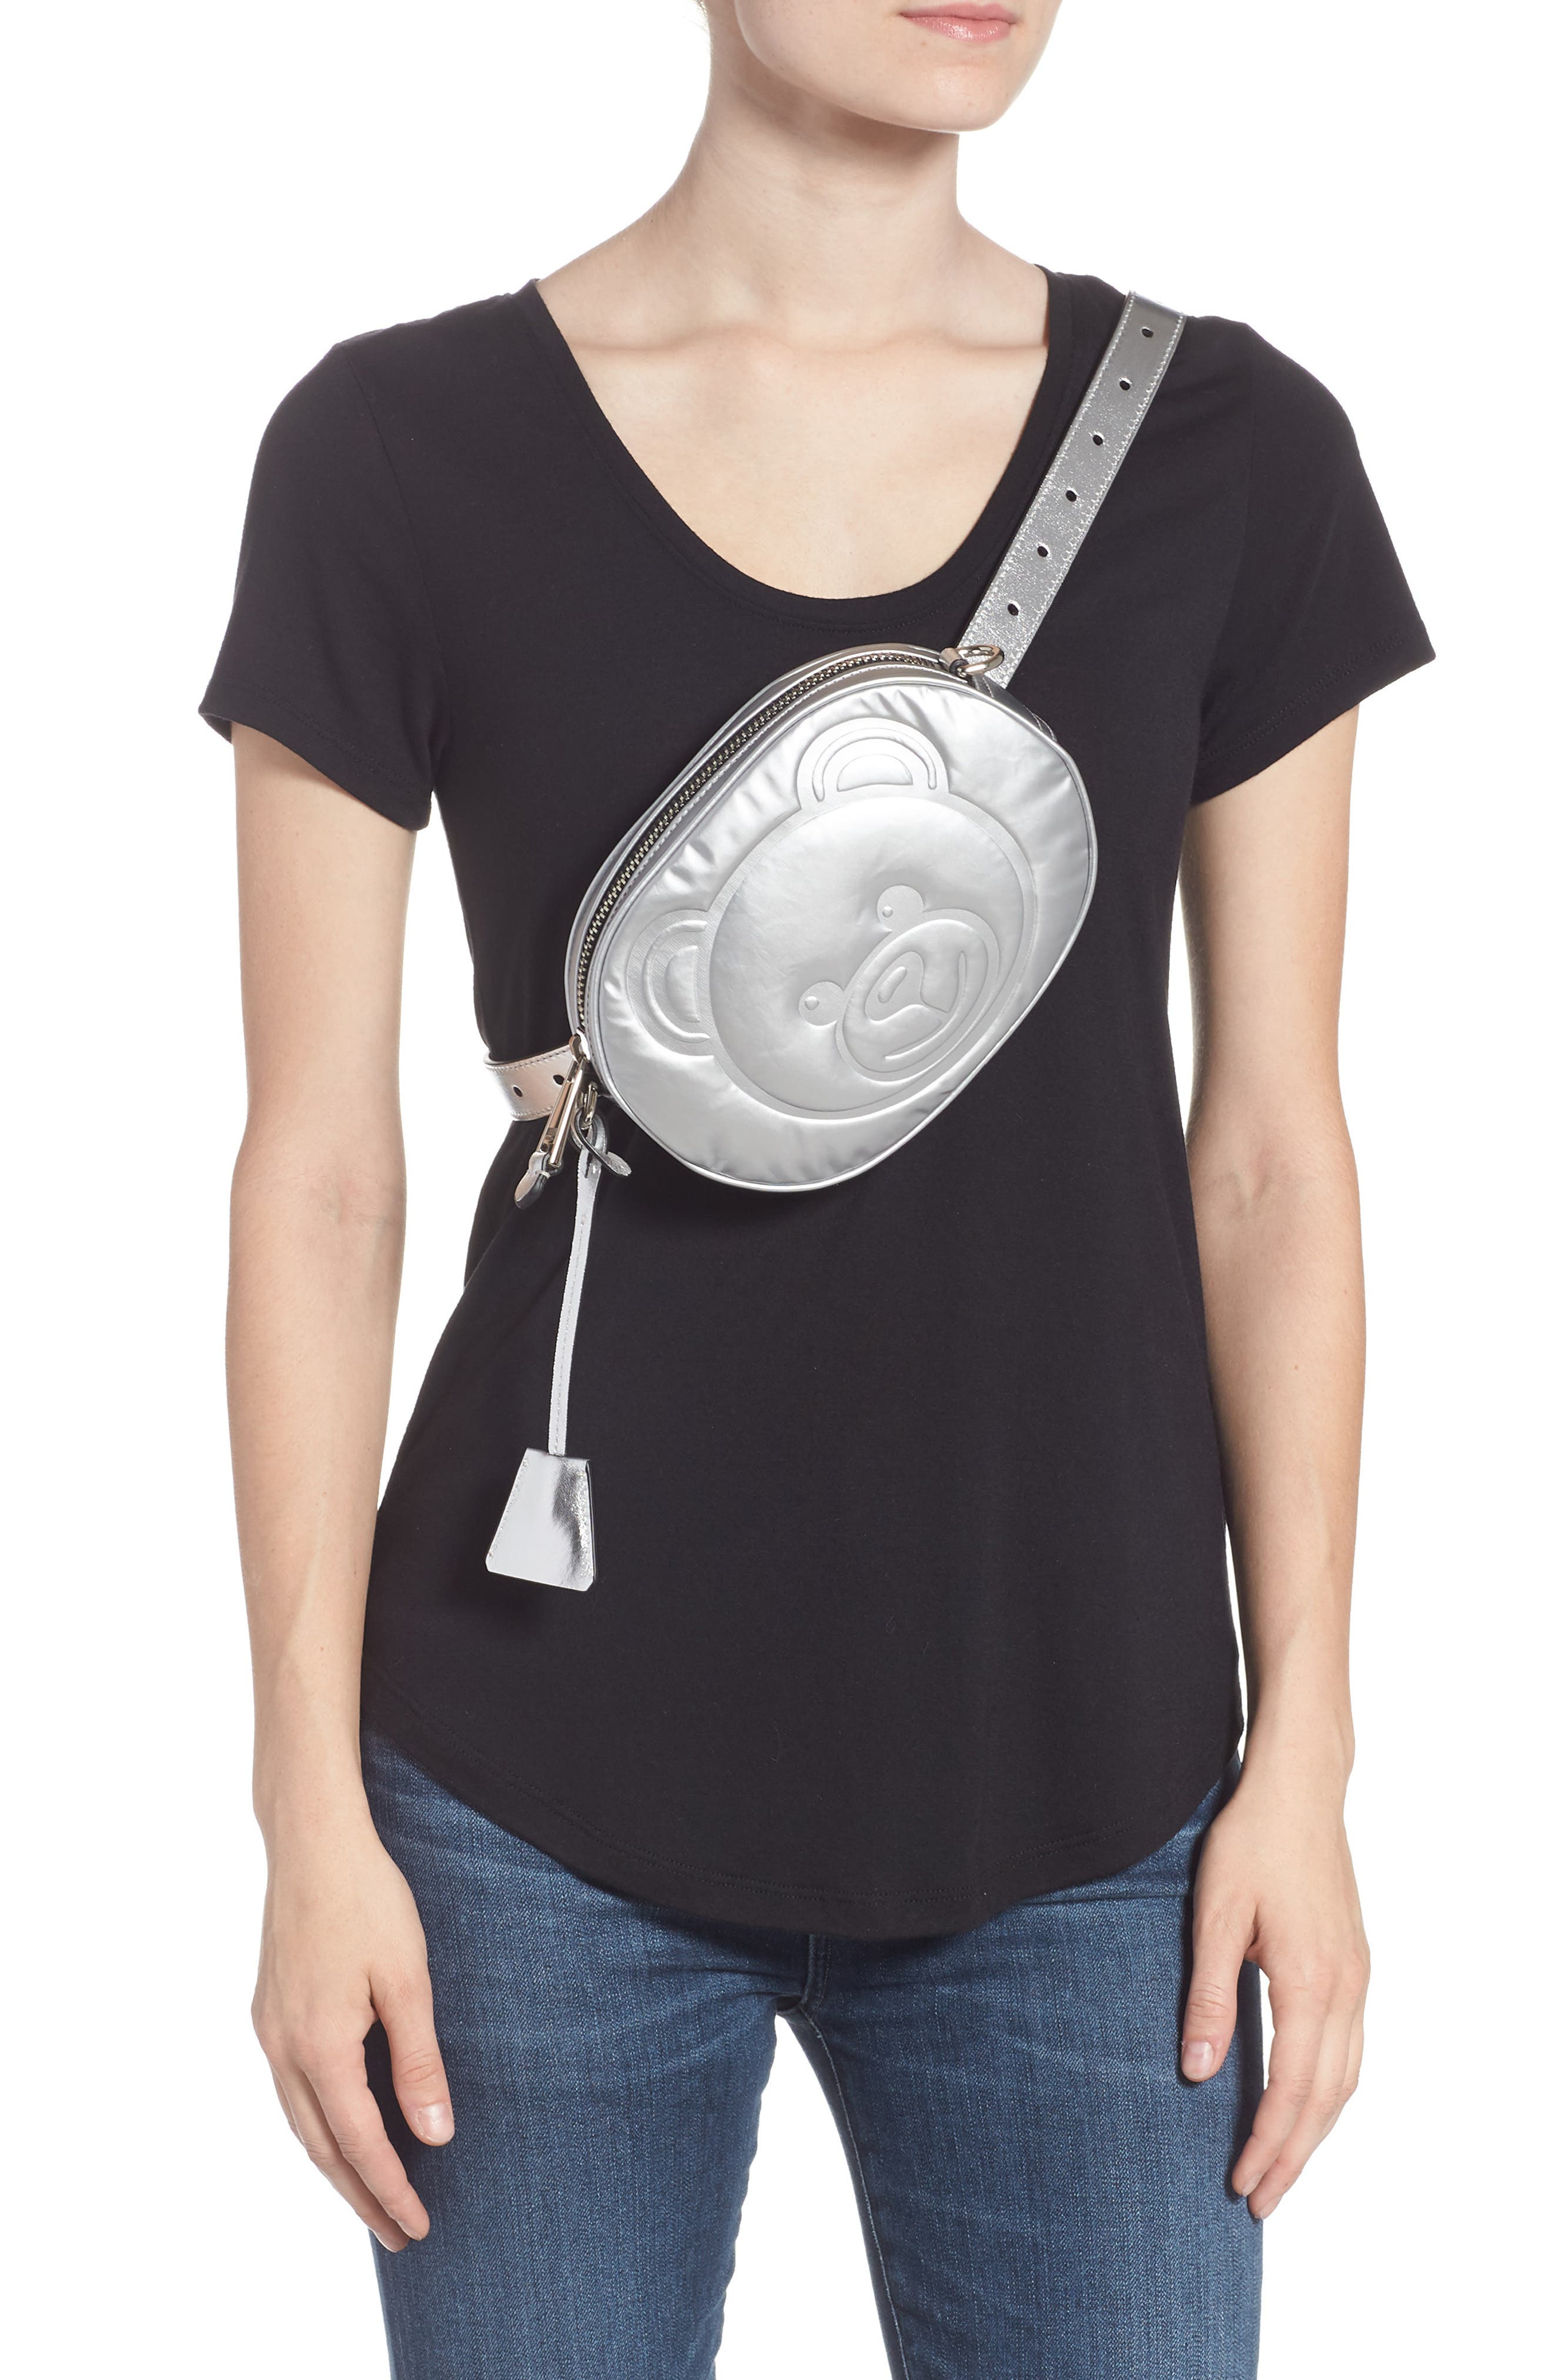 MOSCHINO, Silver Teddy Belt Bag, Alternate thumbnail 3, color, SILVER